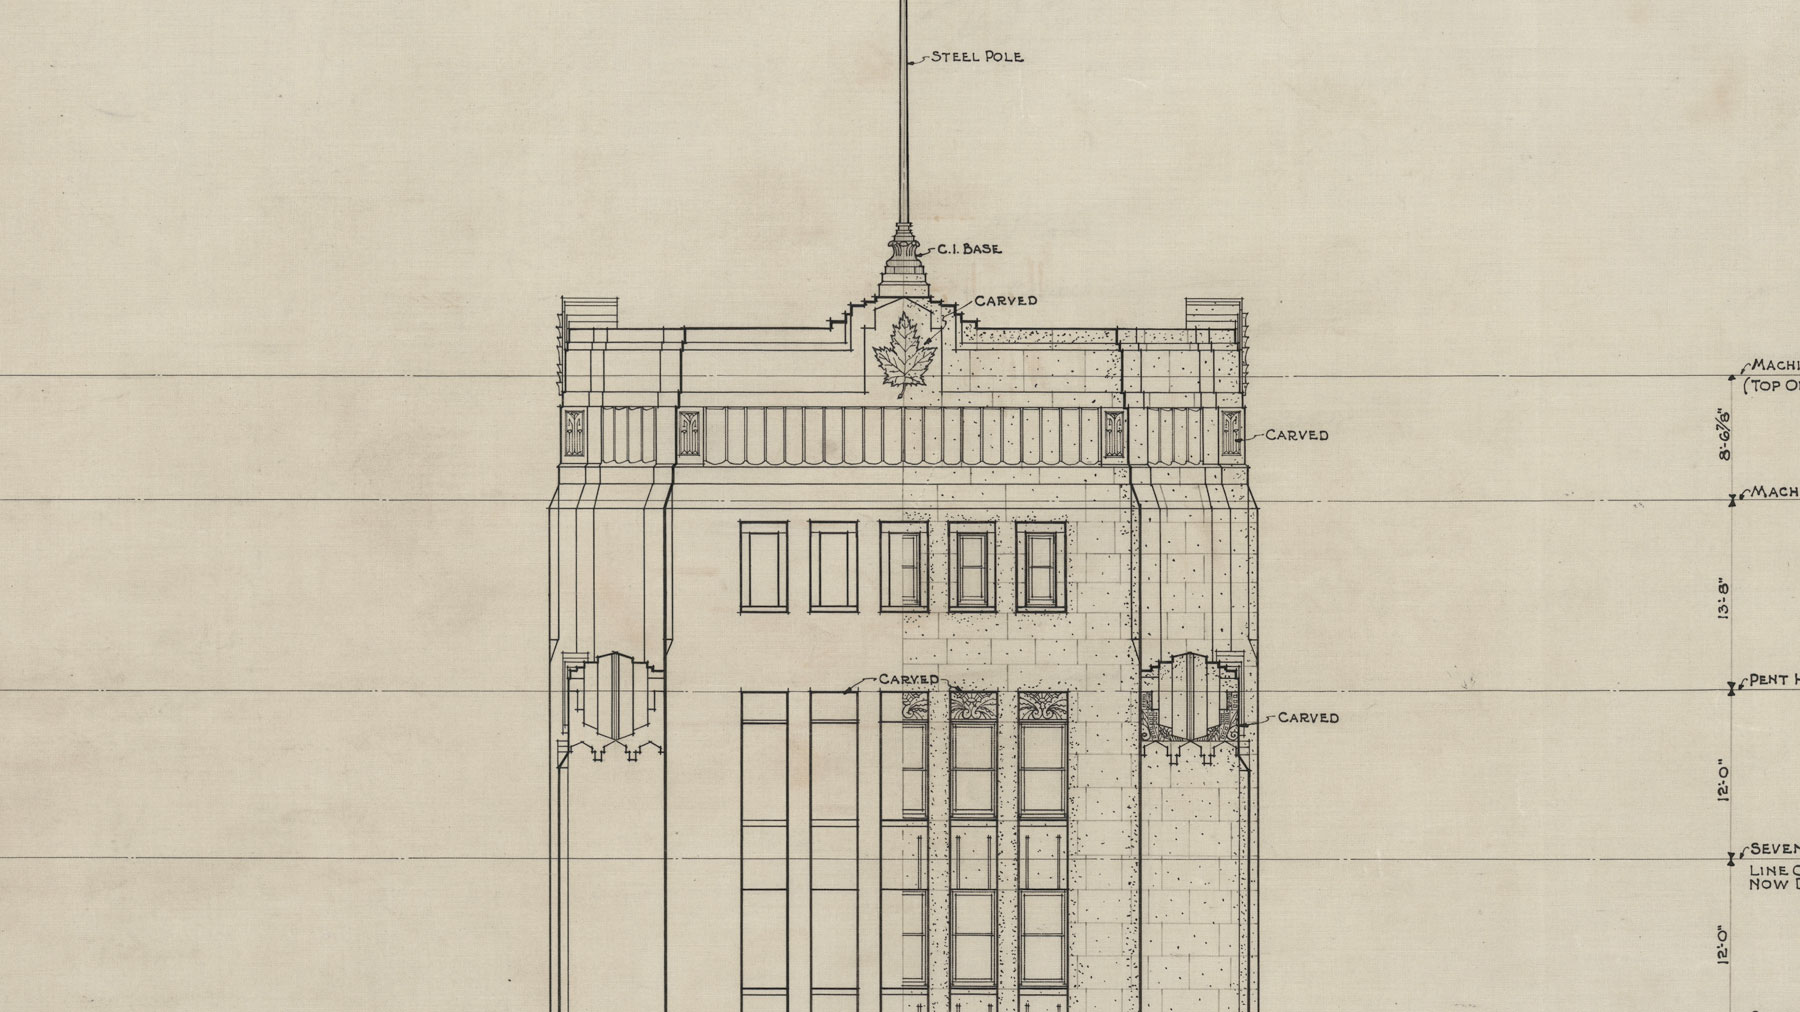 The Dominion Public Building: The Architectural Drawings - Elevation